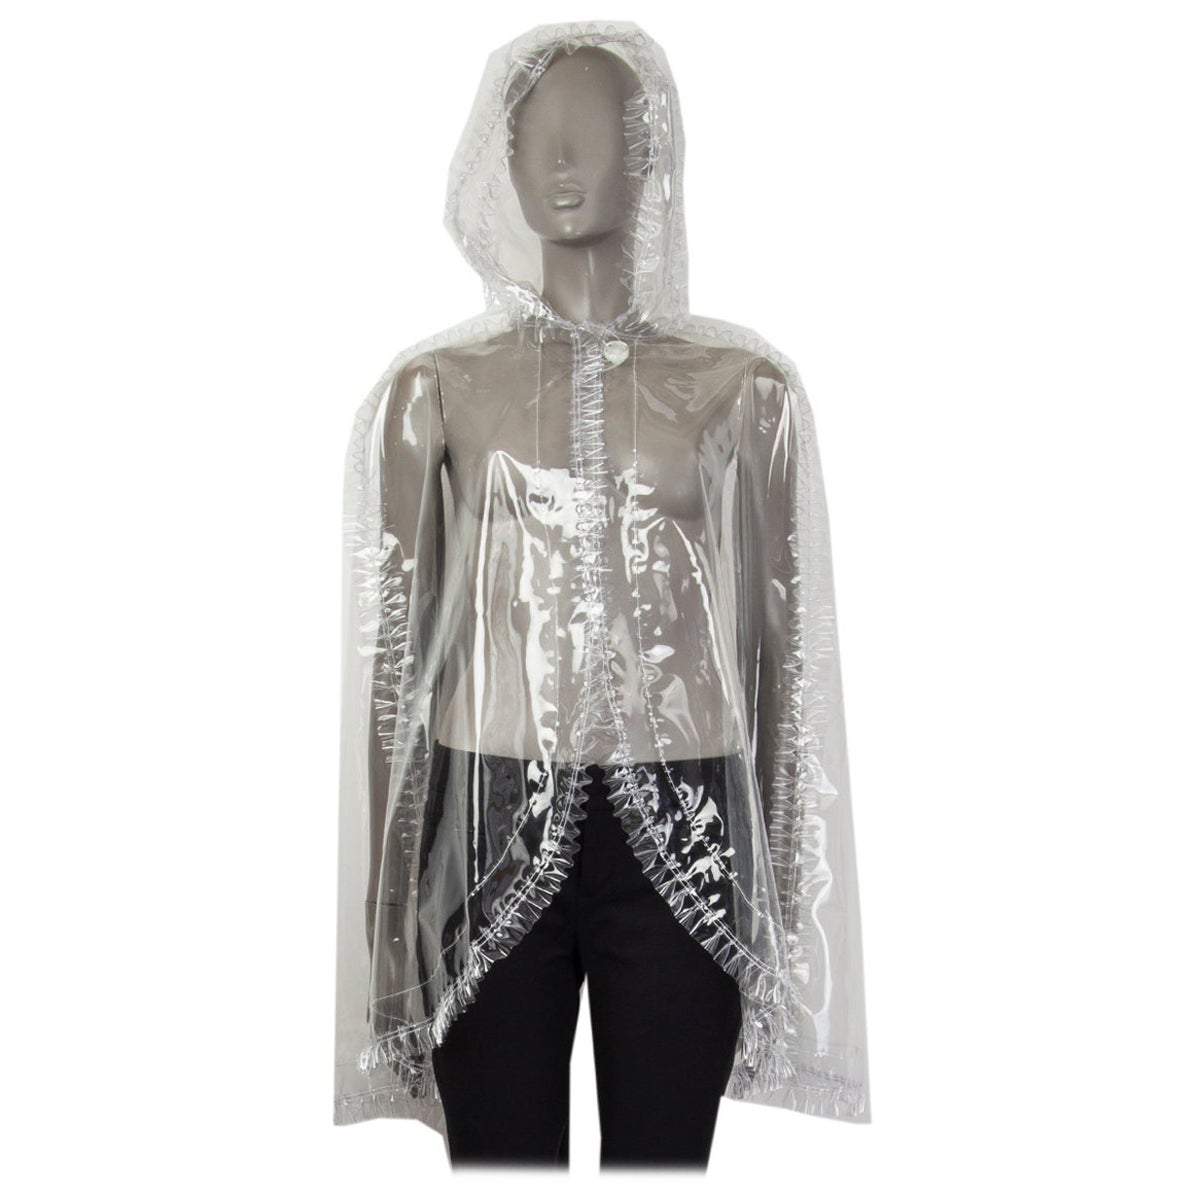 CHANEL clear PVC Rain Cape Jacket M SS 2018 Runway